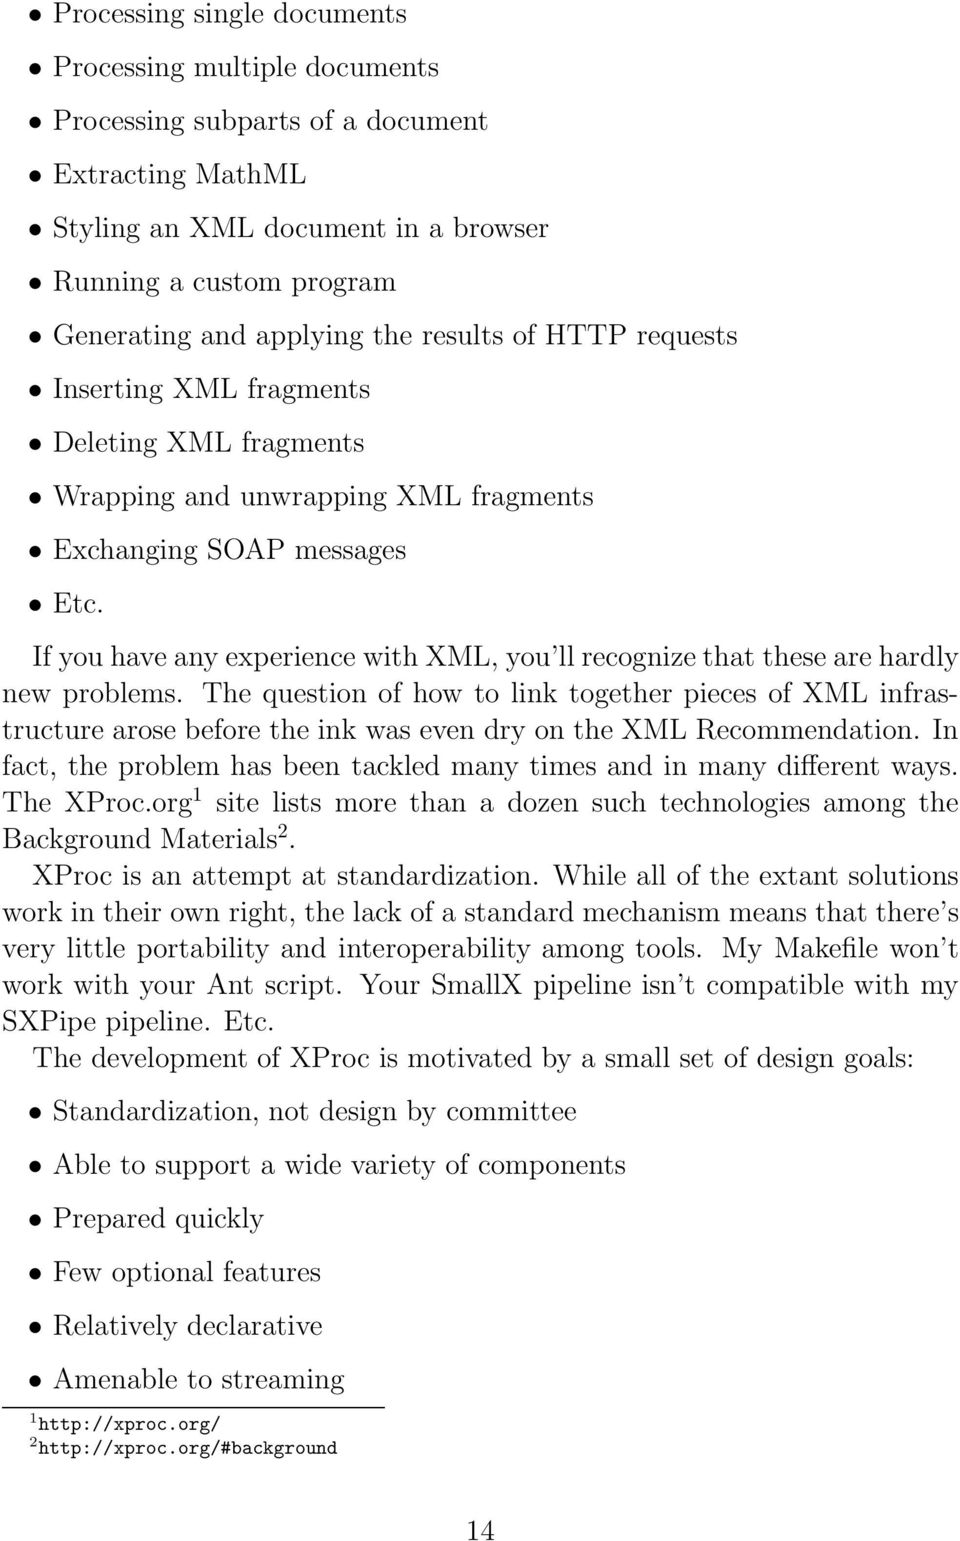 If you have any experience with XML, you ll recognize that these are hardly new problems.